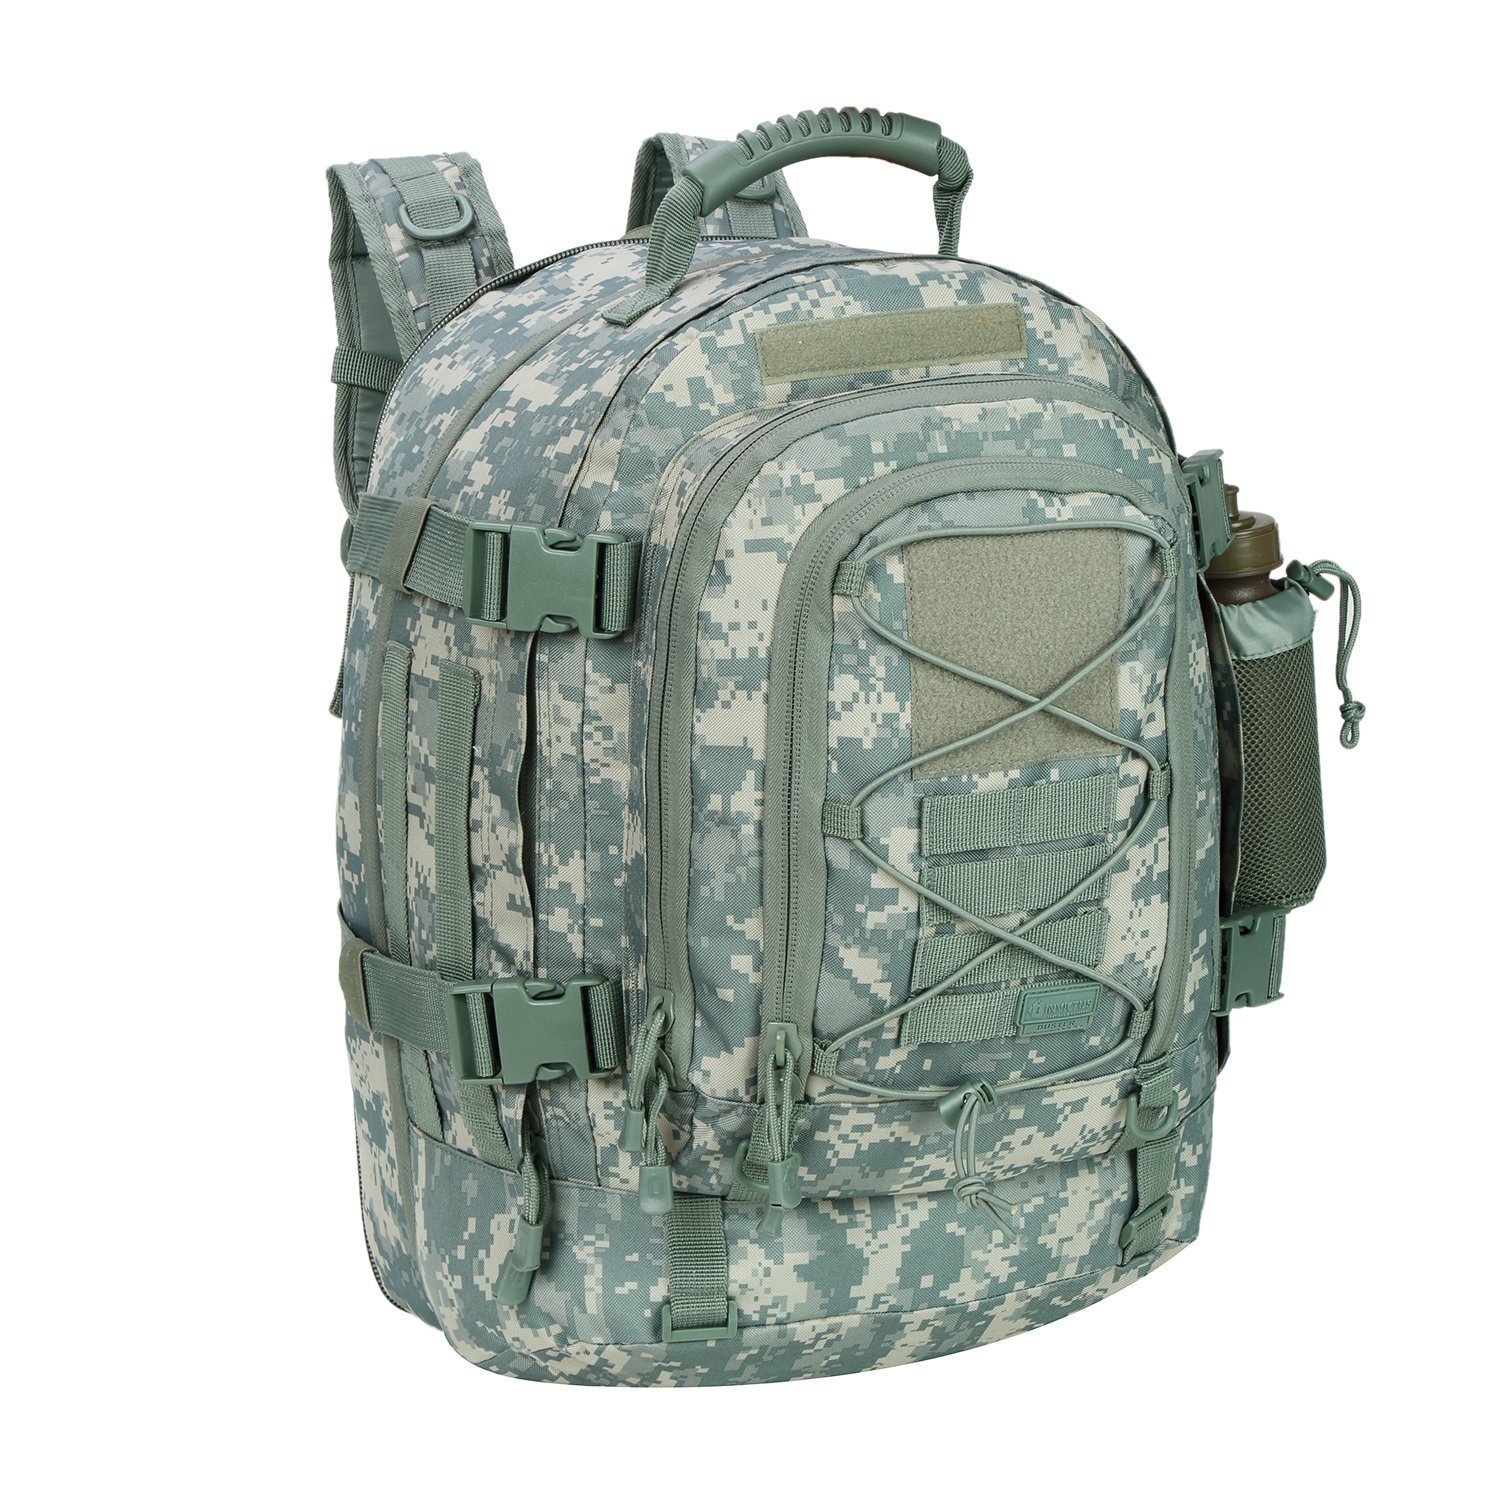 40L Outdoor Expandable Tactical Backpack Military Sport Camping Hiking Trekking Bag (ACU 08001A) by ARMYCAMOUSA by ARMYCAMOUSA